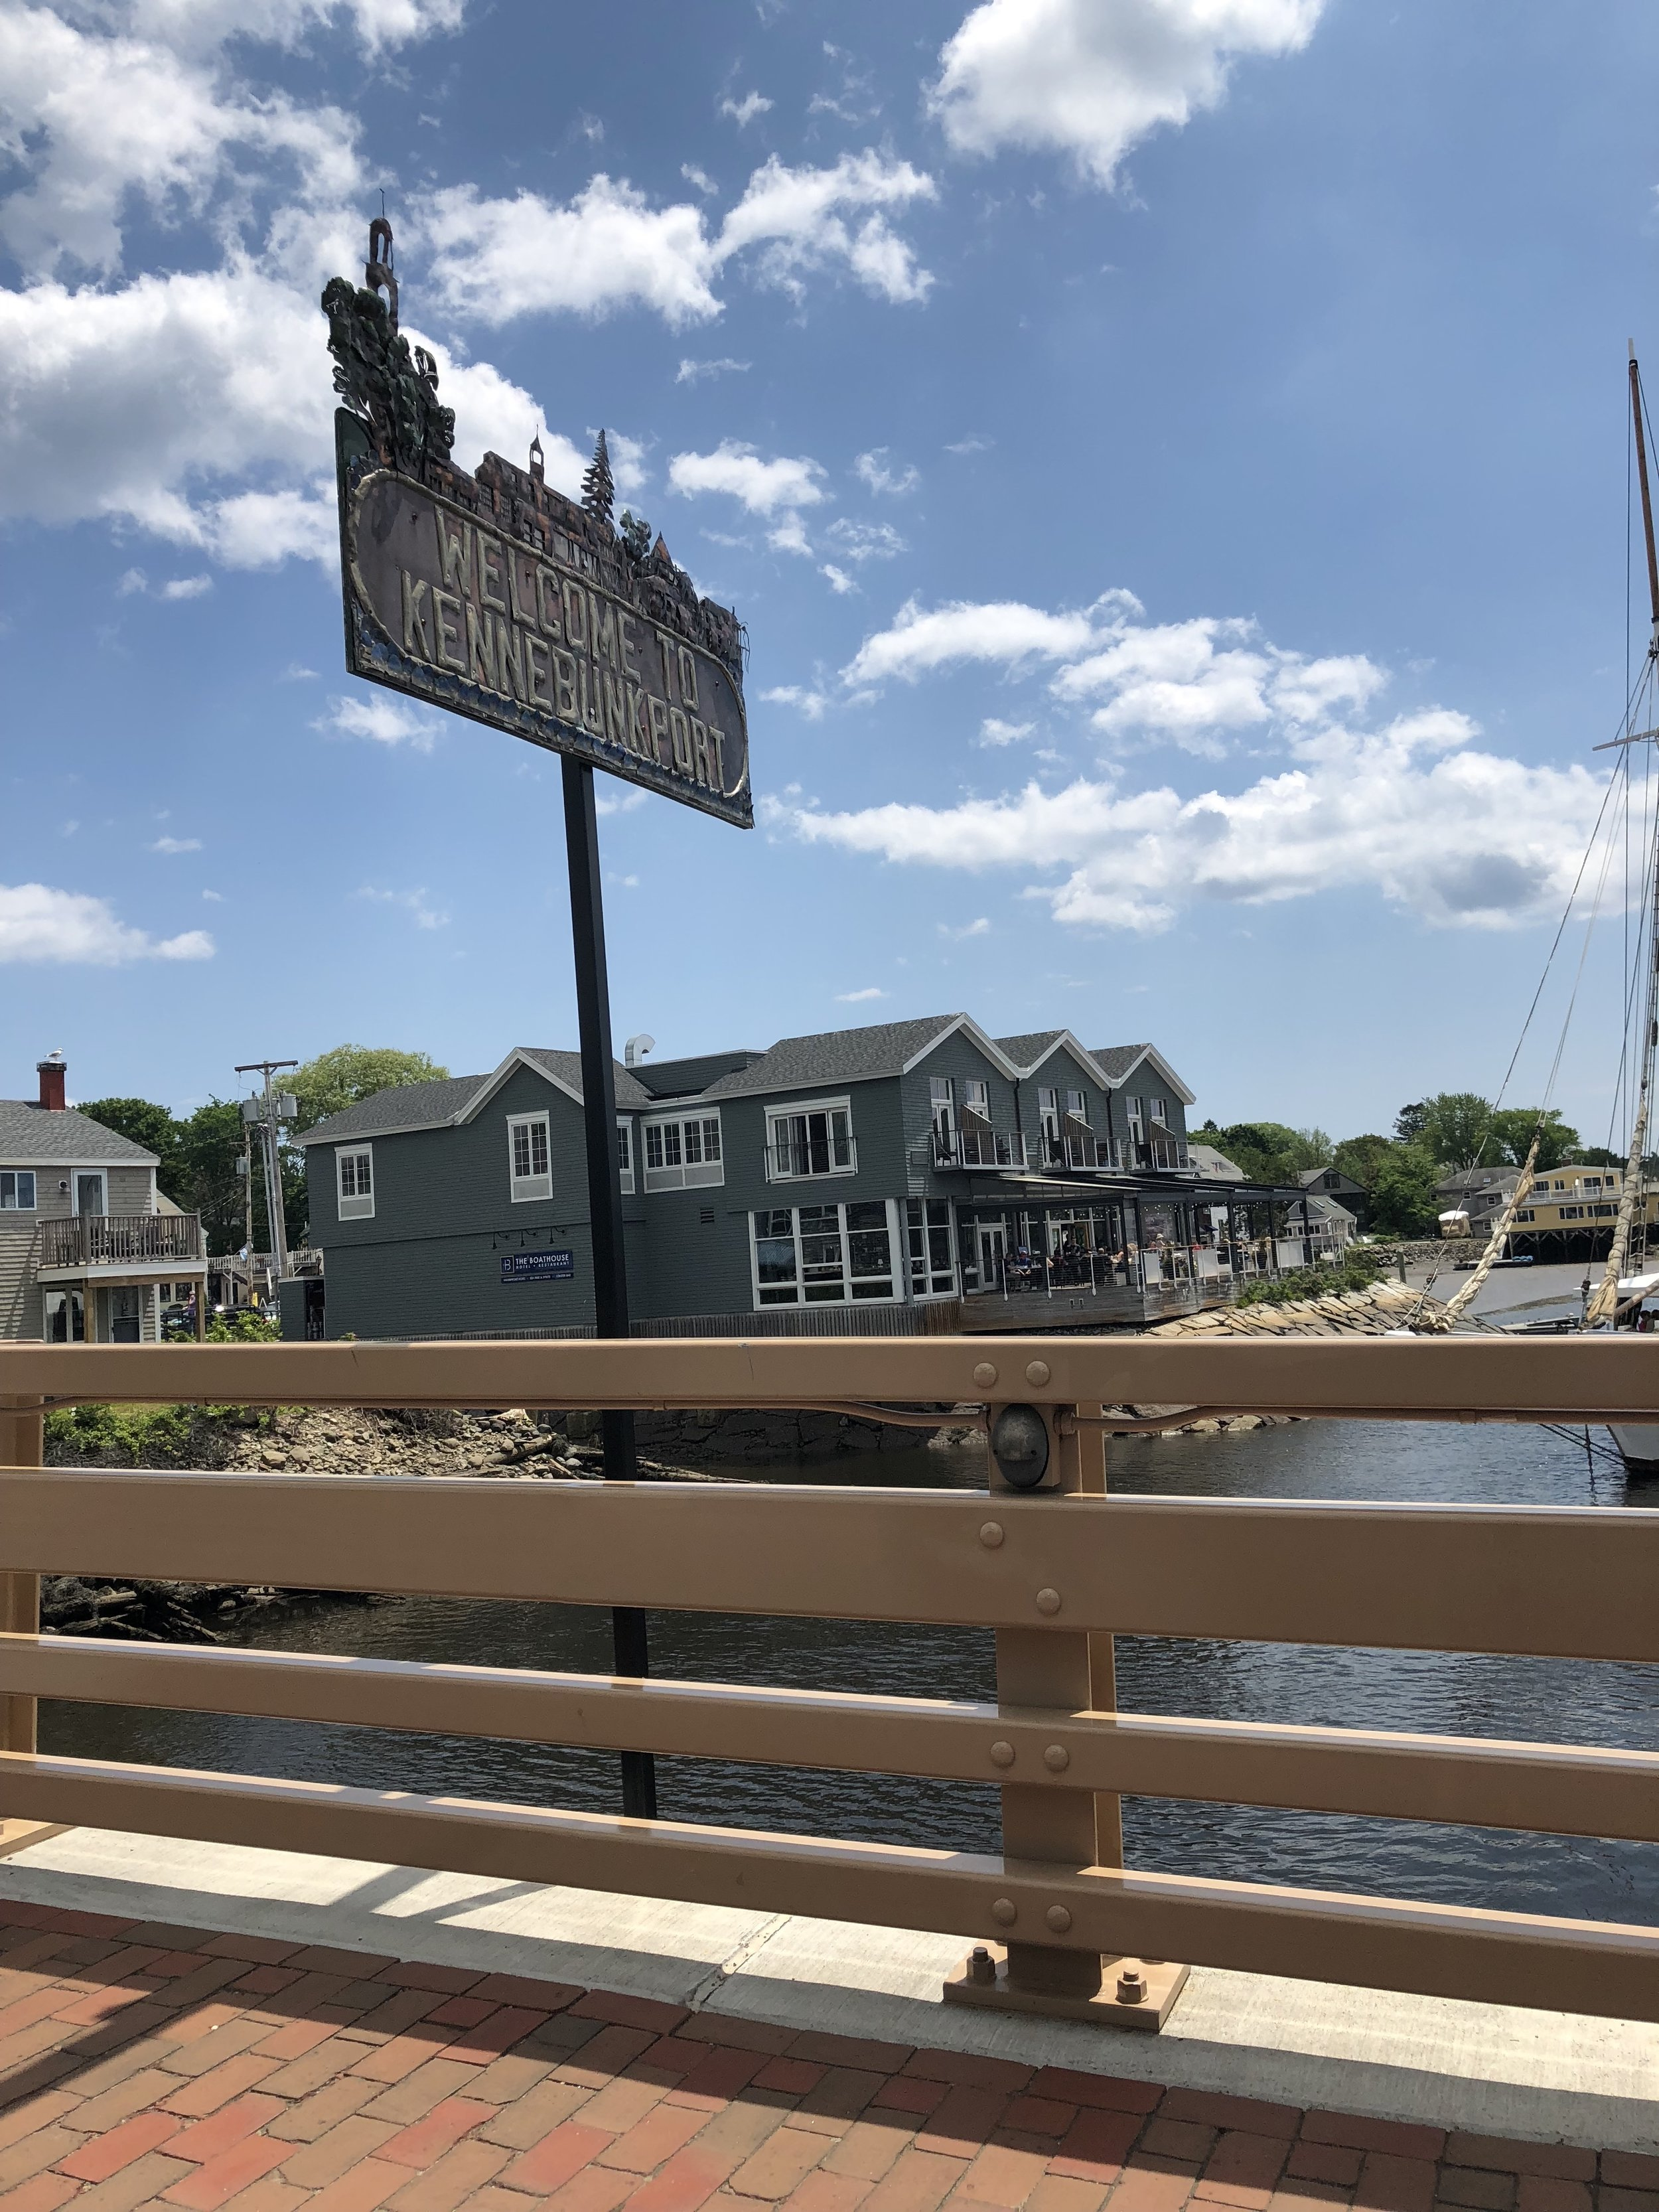 Downtown Kennebunkport on the way to Acadia